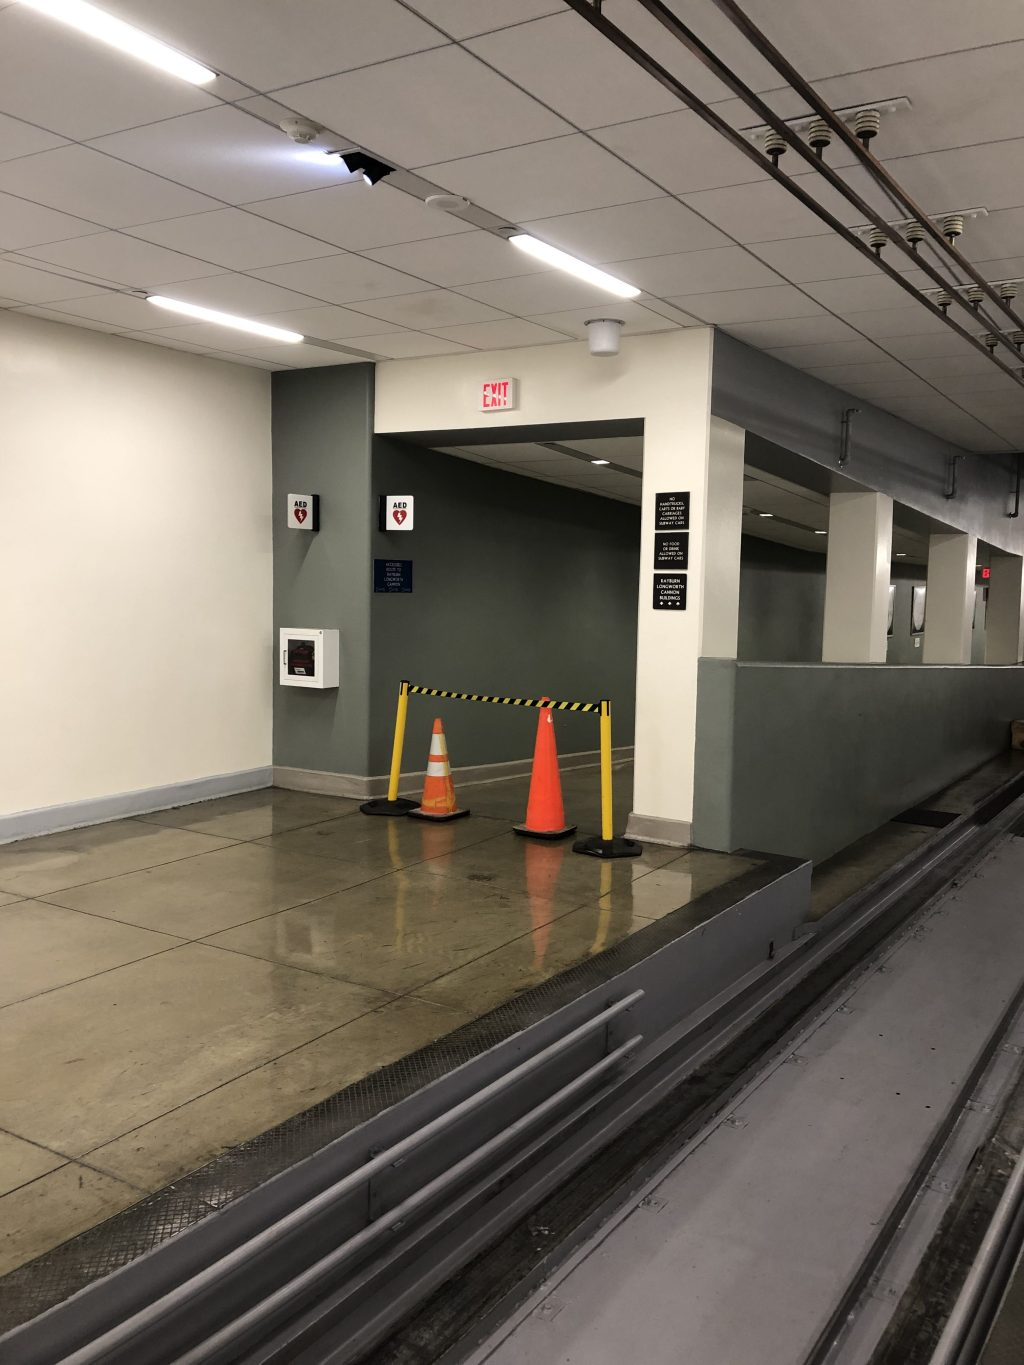 The pedestrian walkway in the Rayburn tunnel that connects to the Capitol flooded due to heavy rain Monday.